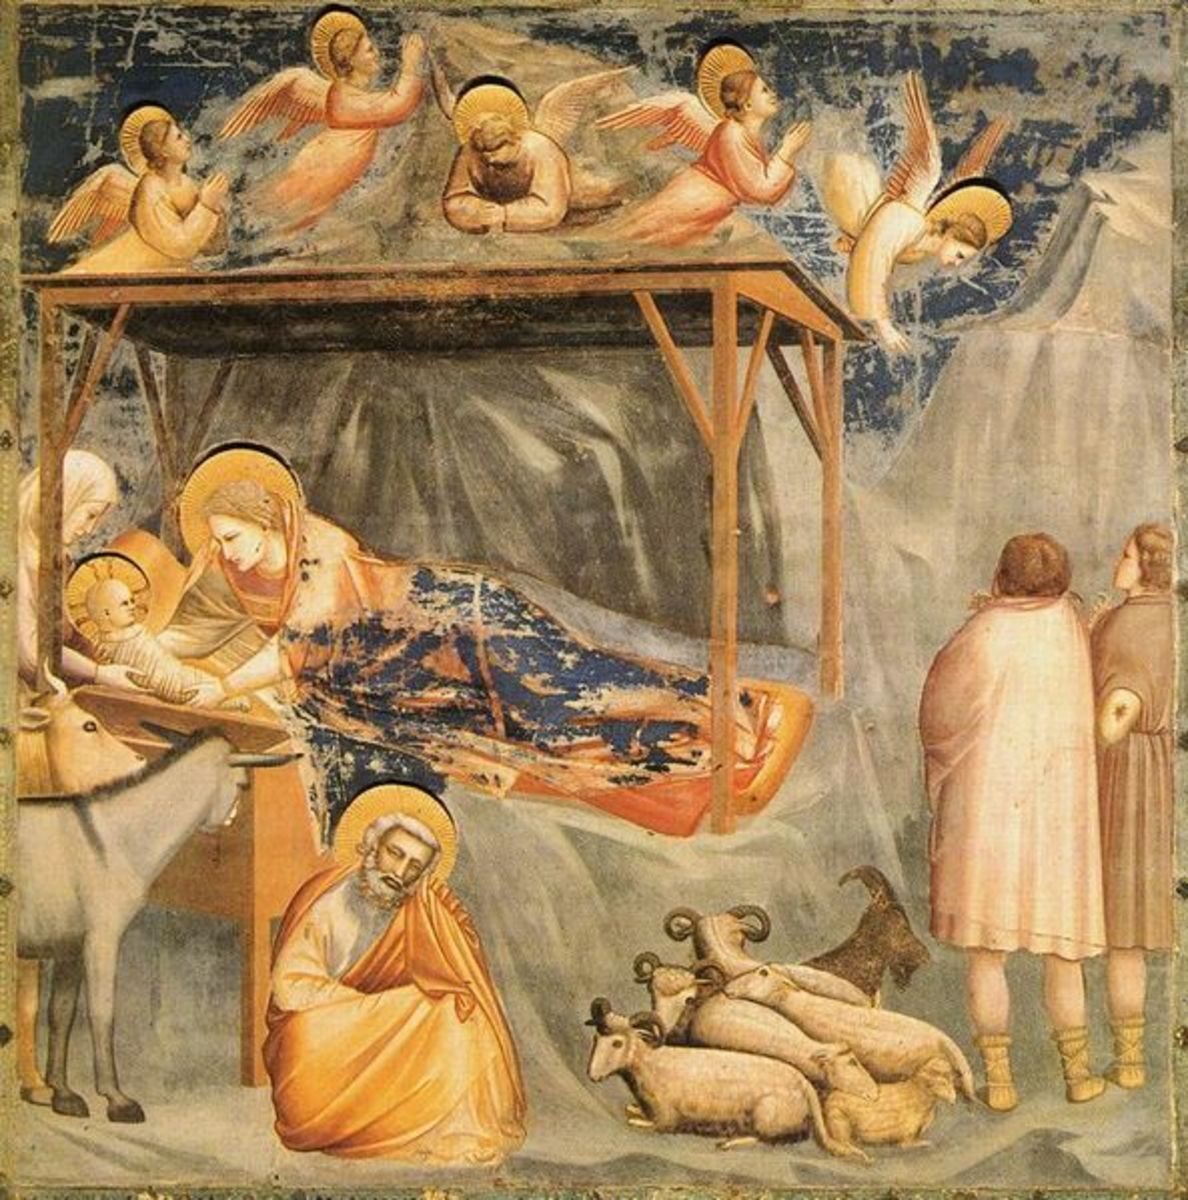 Nativity, Adoration of the Magi and the Shepherds: Christmas in Italian Art from 1300s to 1600s